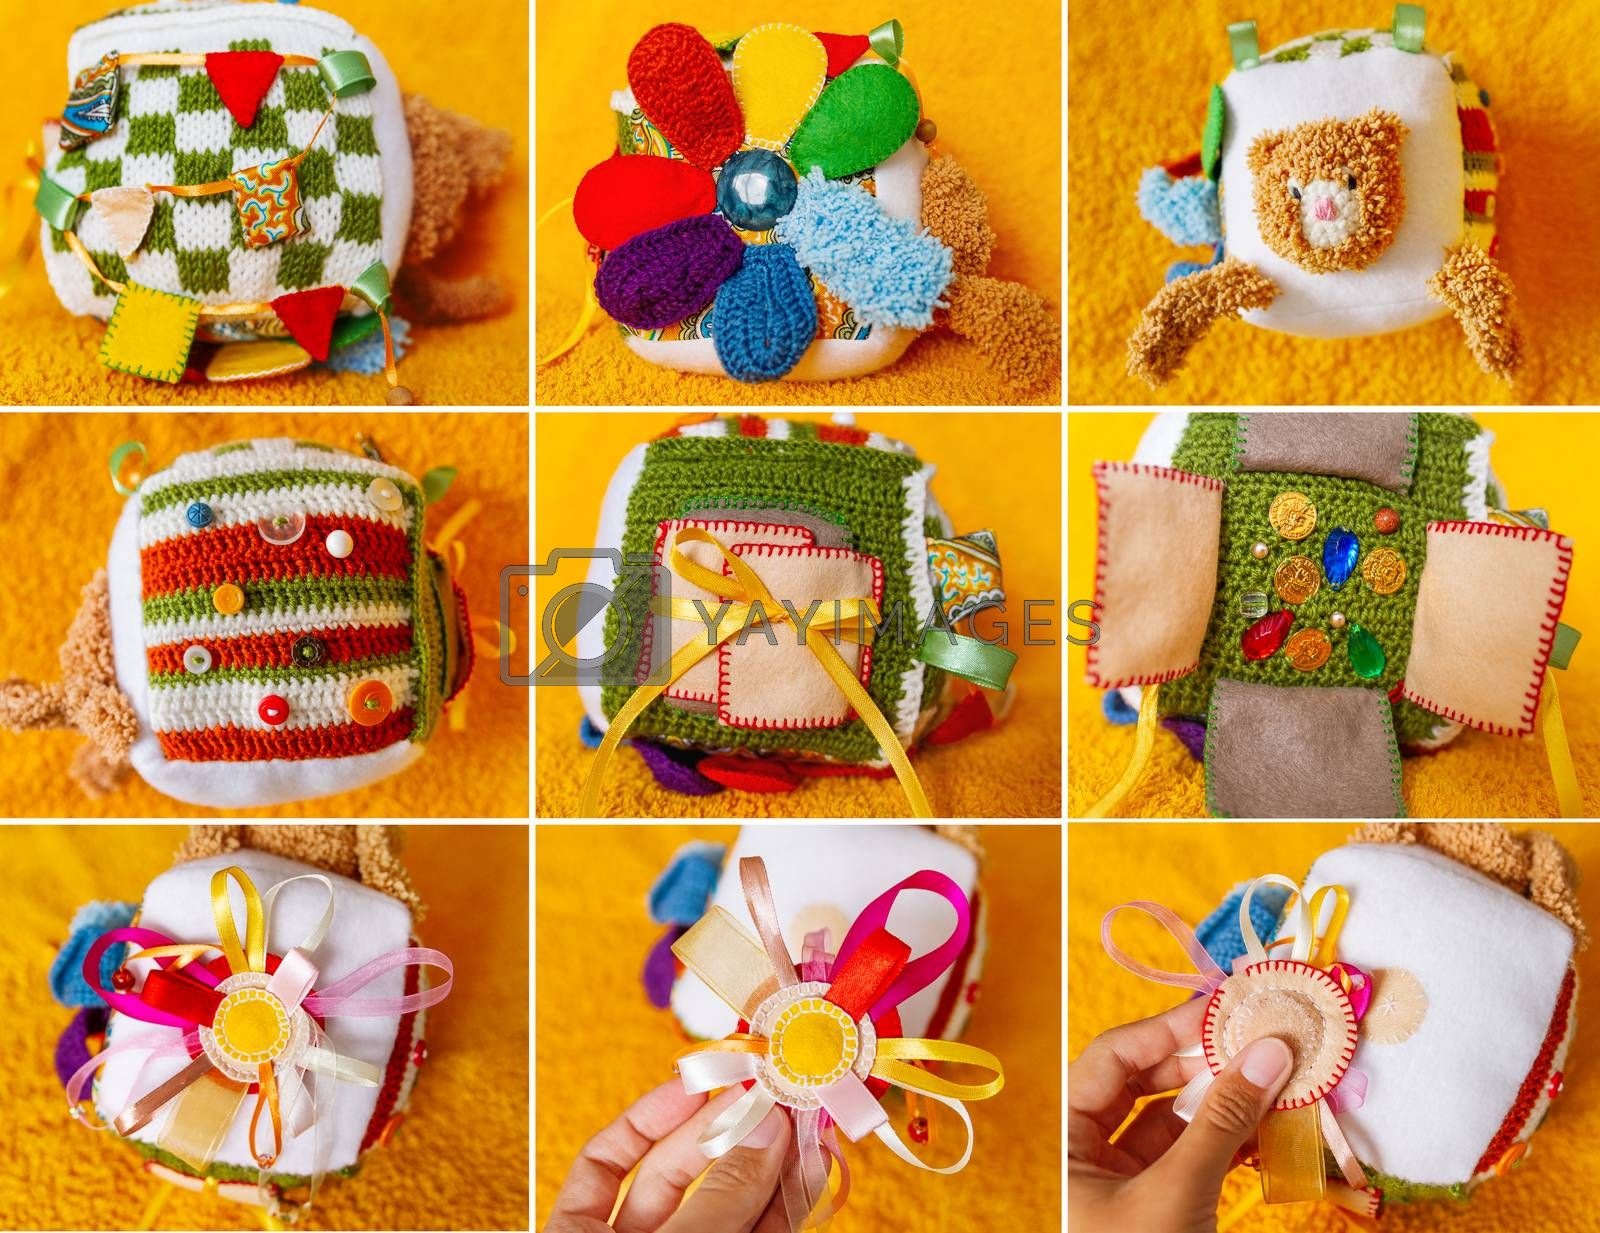 Colorful hand made toy for toddlers and babies. Busy cube. Soft  baby block made of fabric to develop skills and fine motor skills. Taggie Cube. Montessori busy toy. Collage.